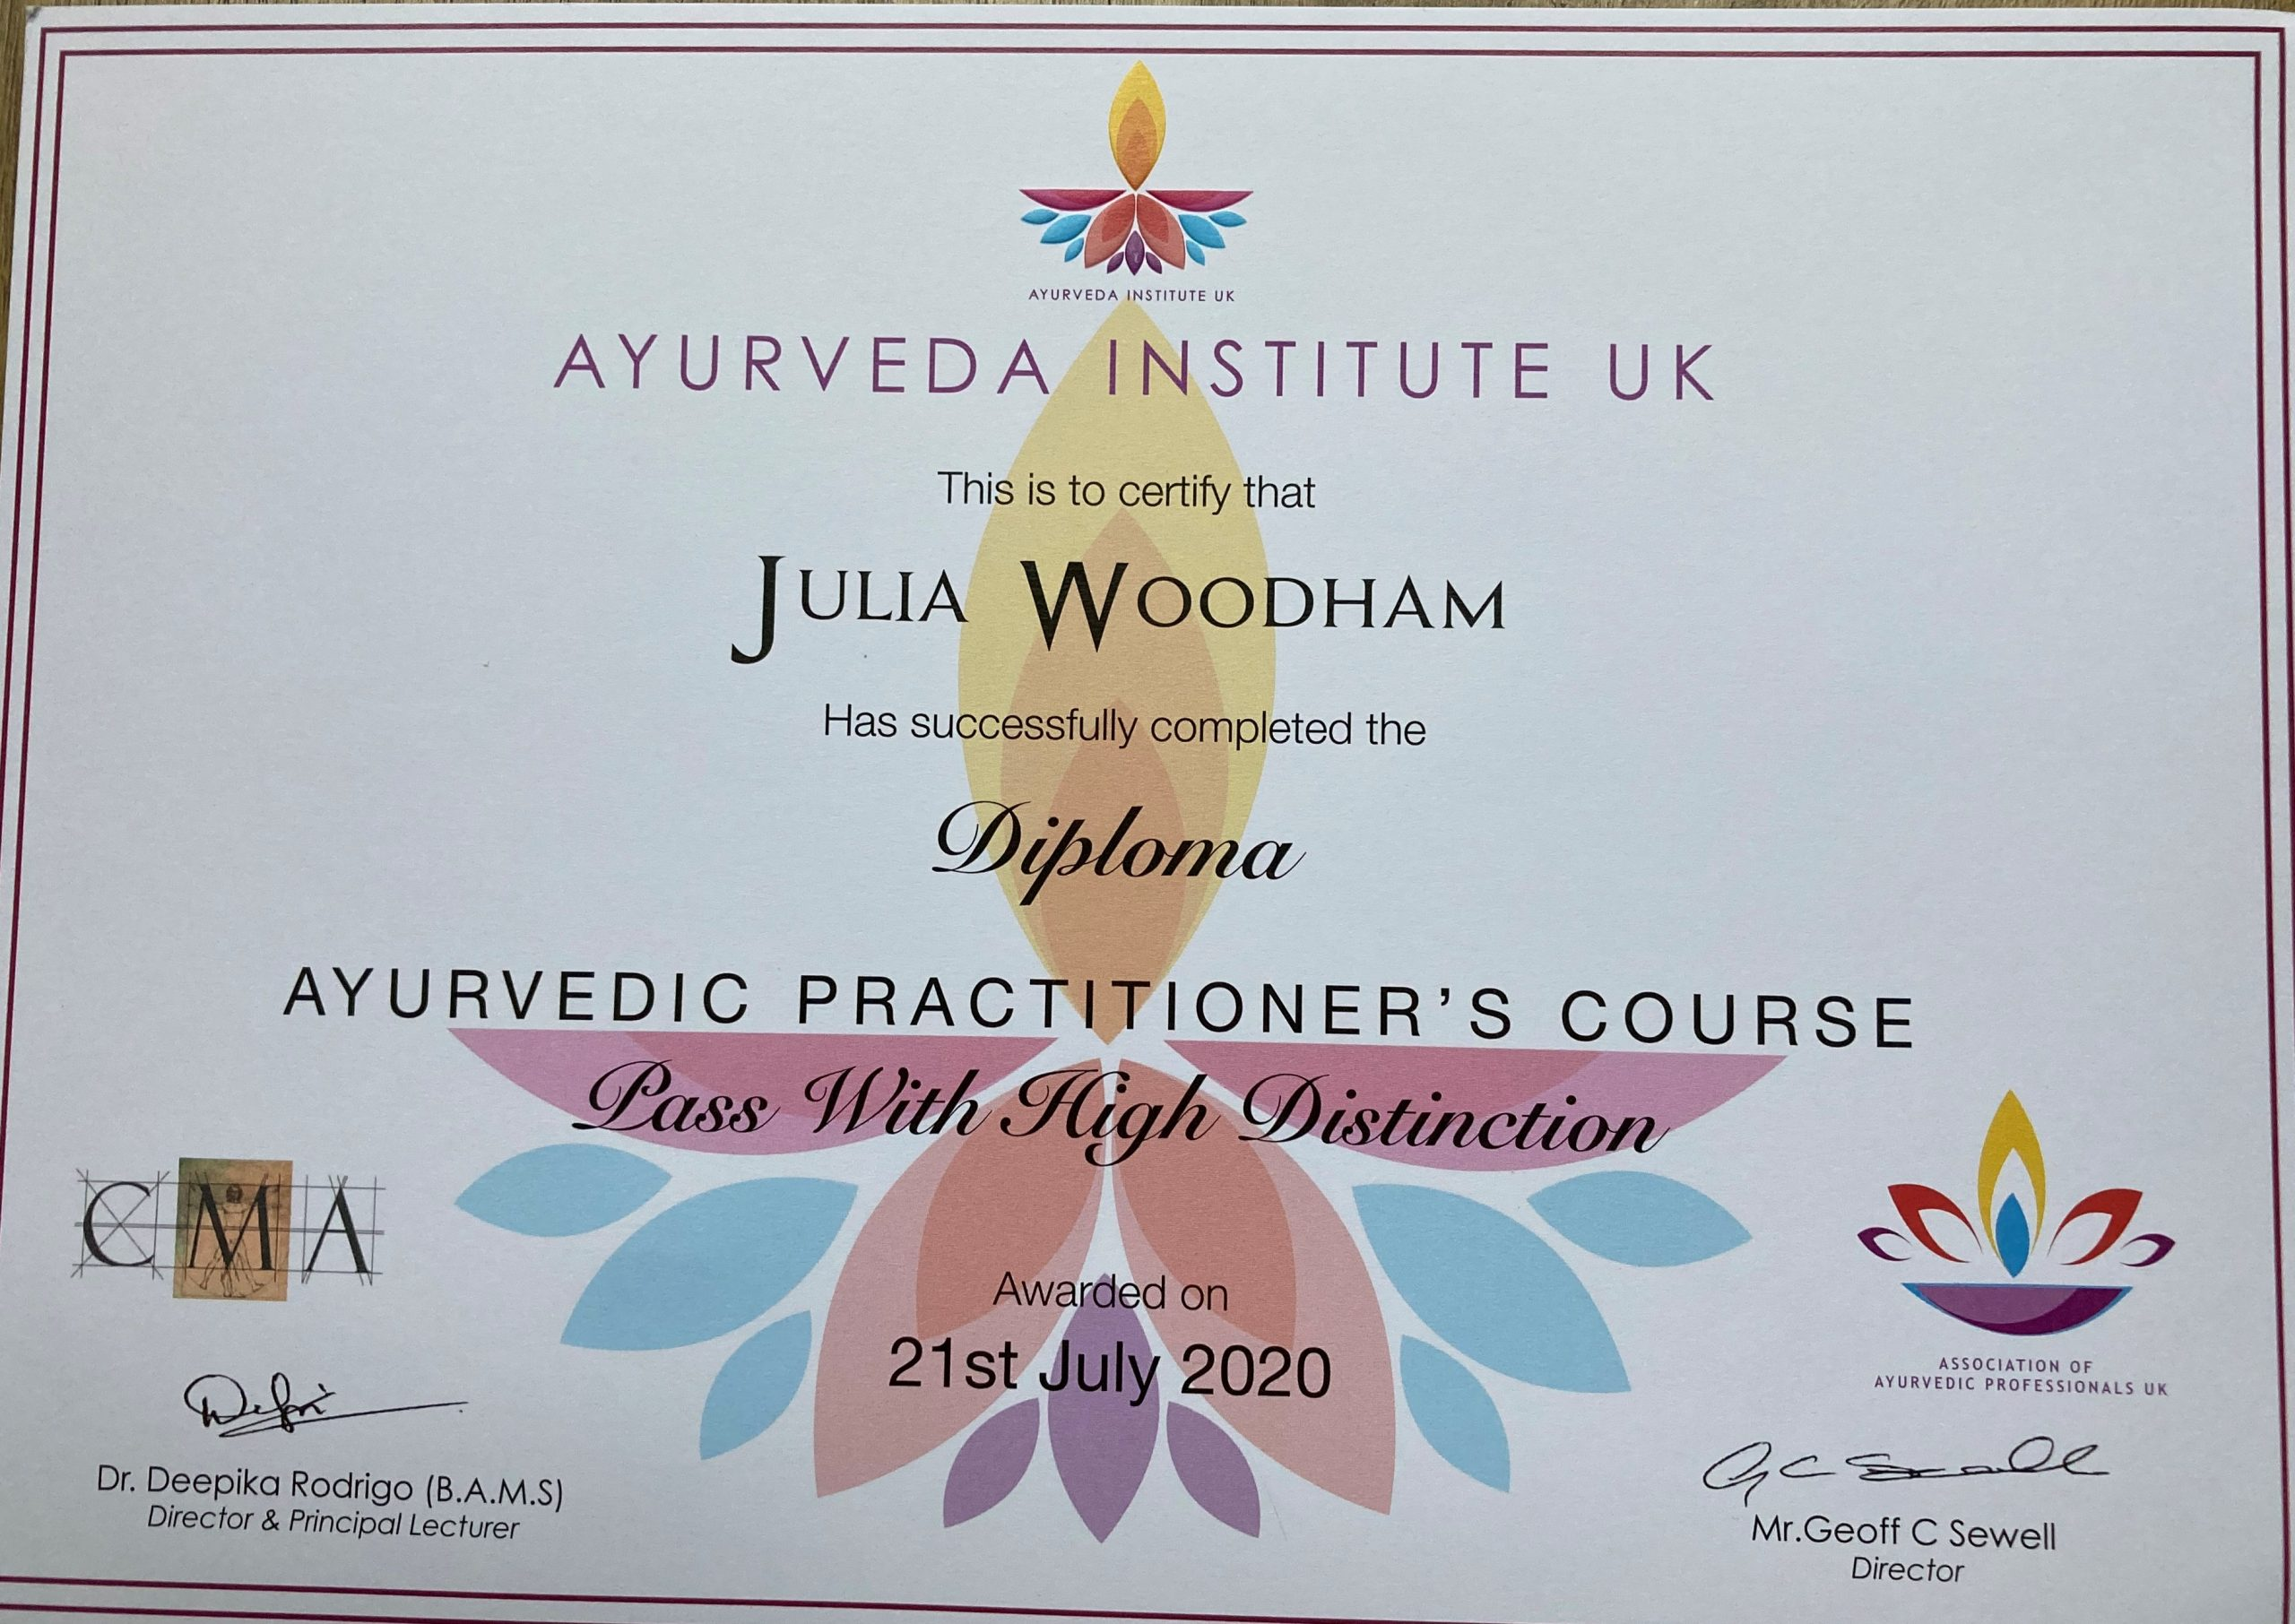 I passed my year 2 Ayurveda exams with a High Distinction